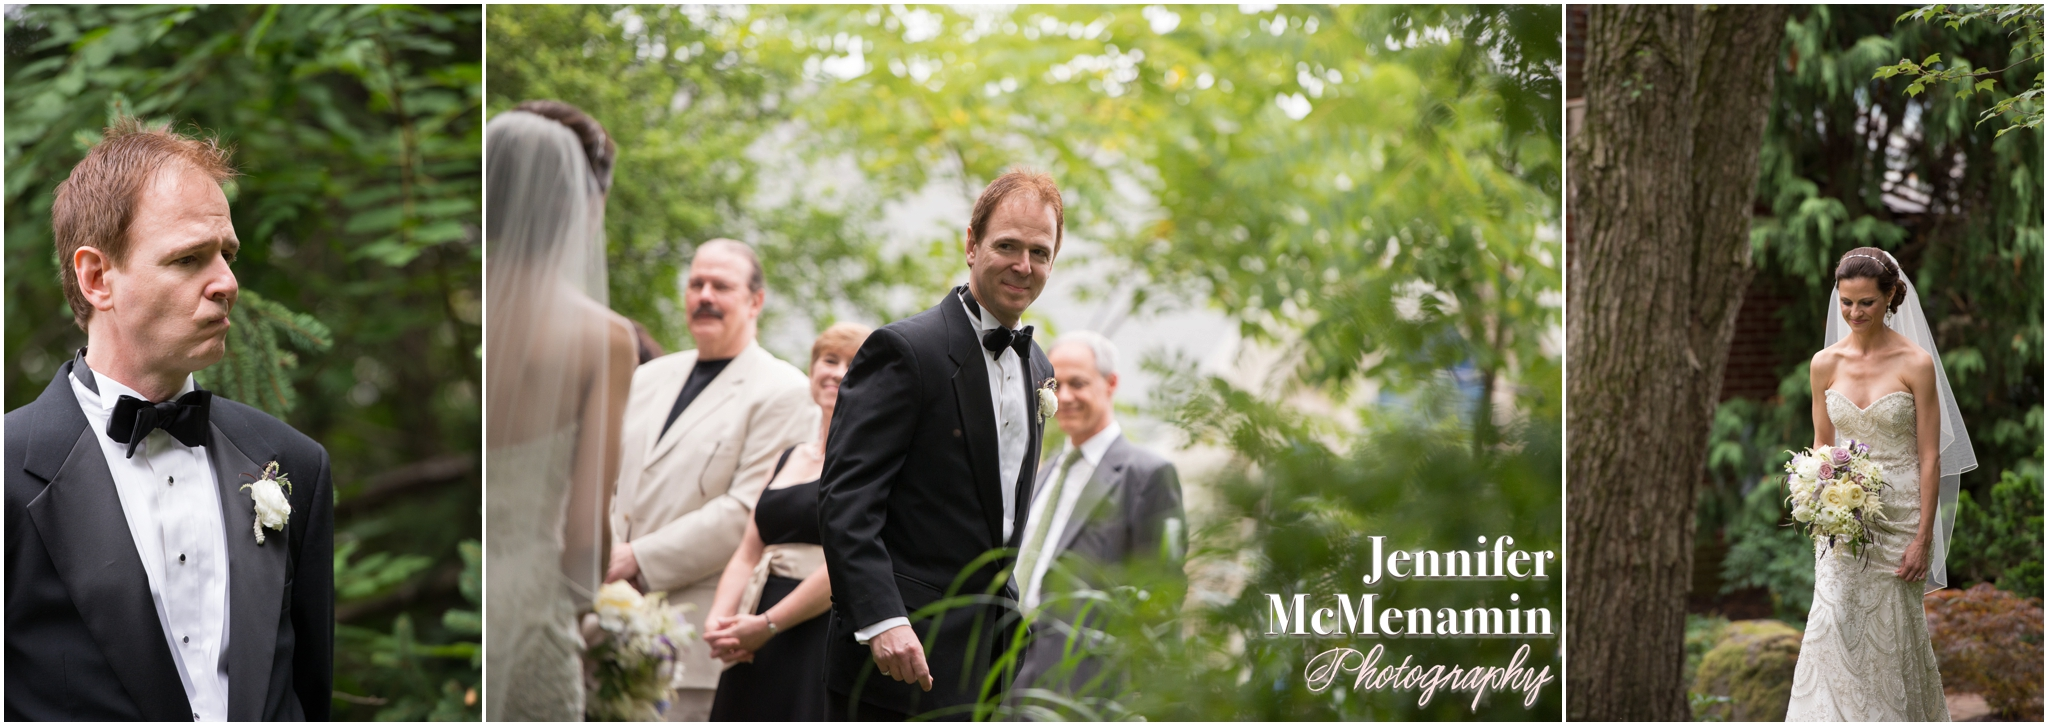 033-CoughlinPomper_01665-0322_JenniferMcMenaminPhotography_Private-Residence-Roland-Park_Baltimore-Wedding-Photography